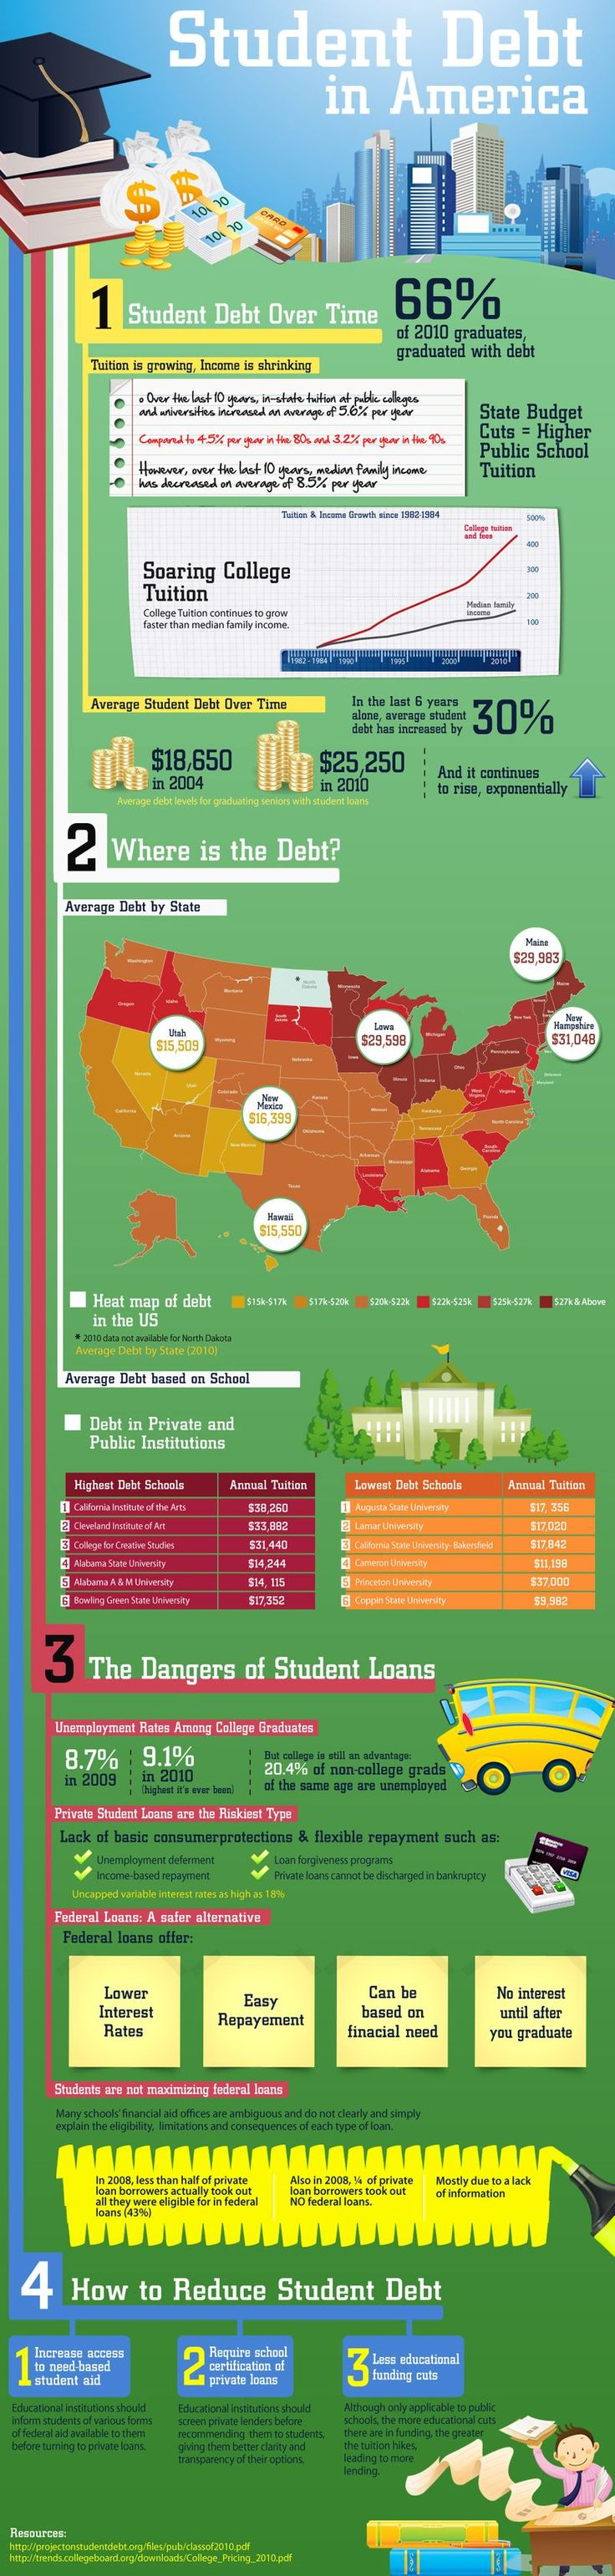 What Does Student Debt In America Look Like? #highered #infographic